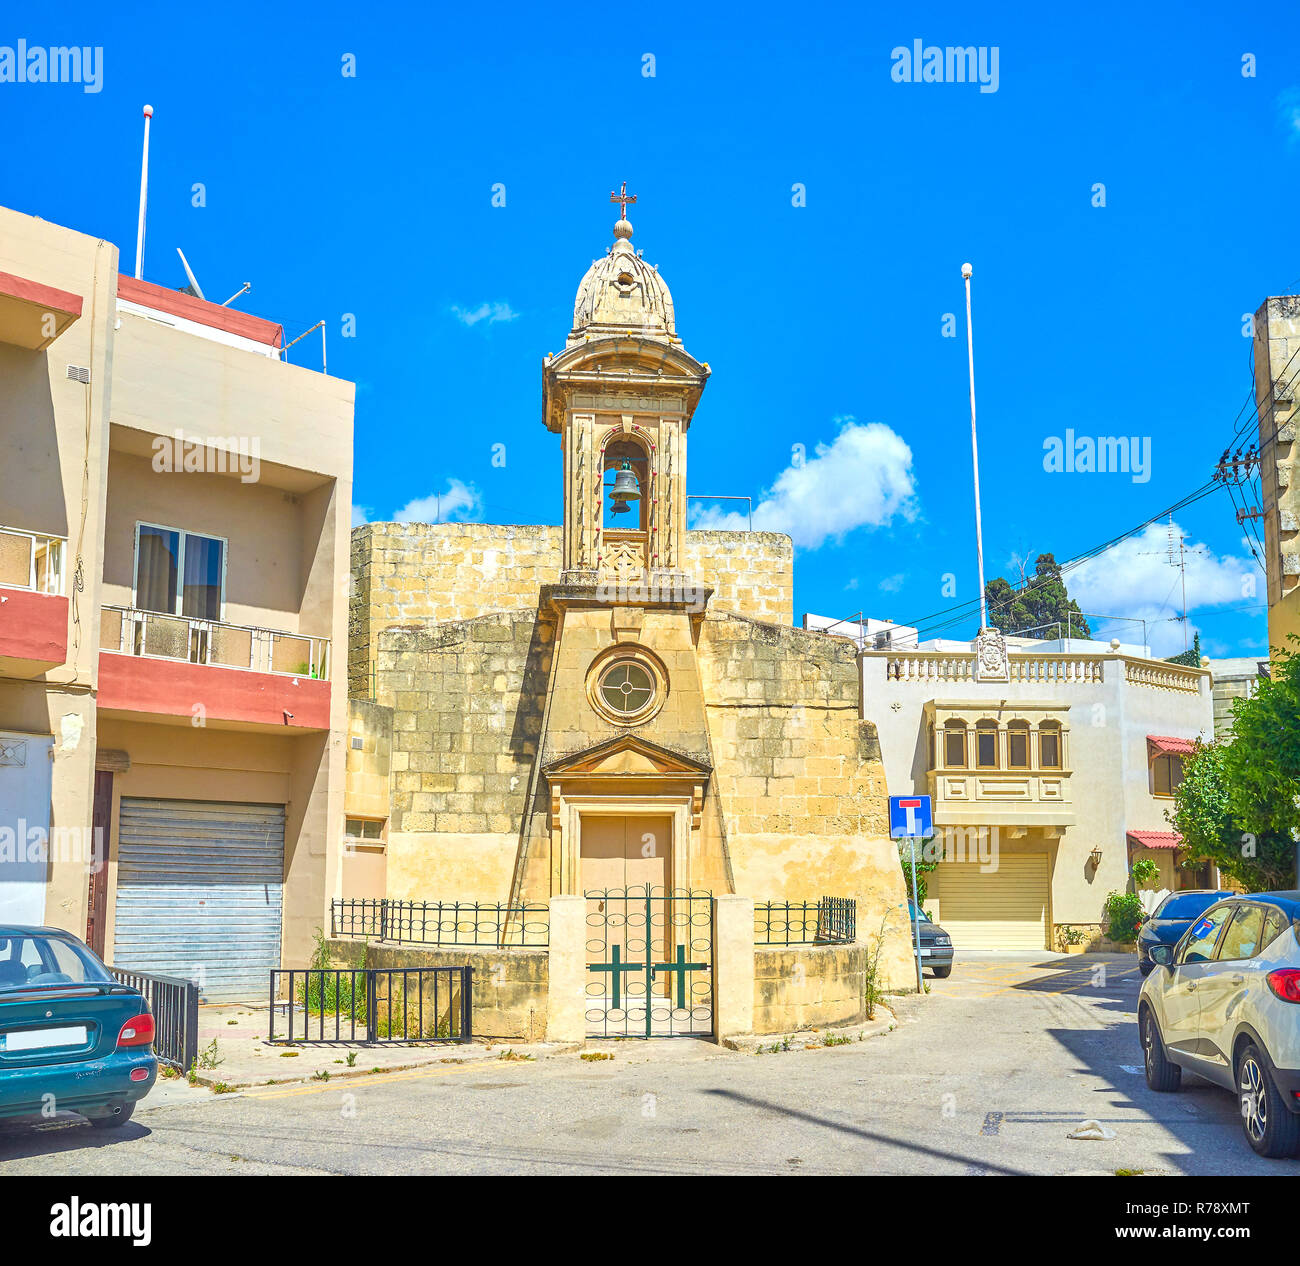 The old small church with bell tower located in residential neighborhood of Mosta town, Malta - Stock Image